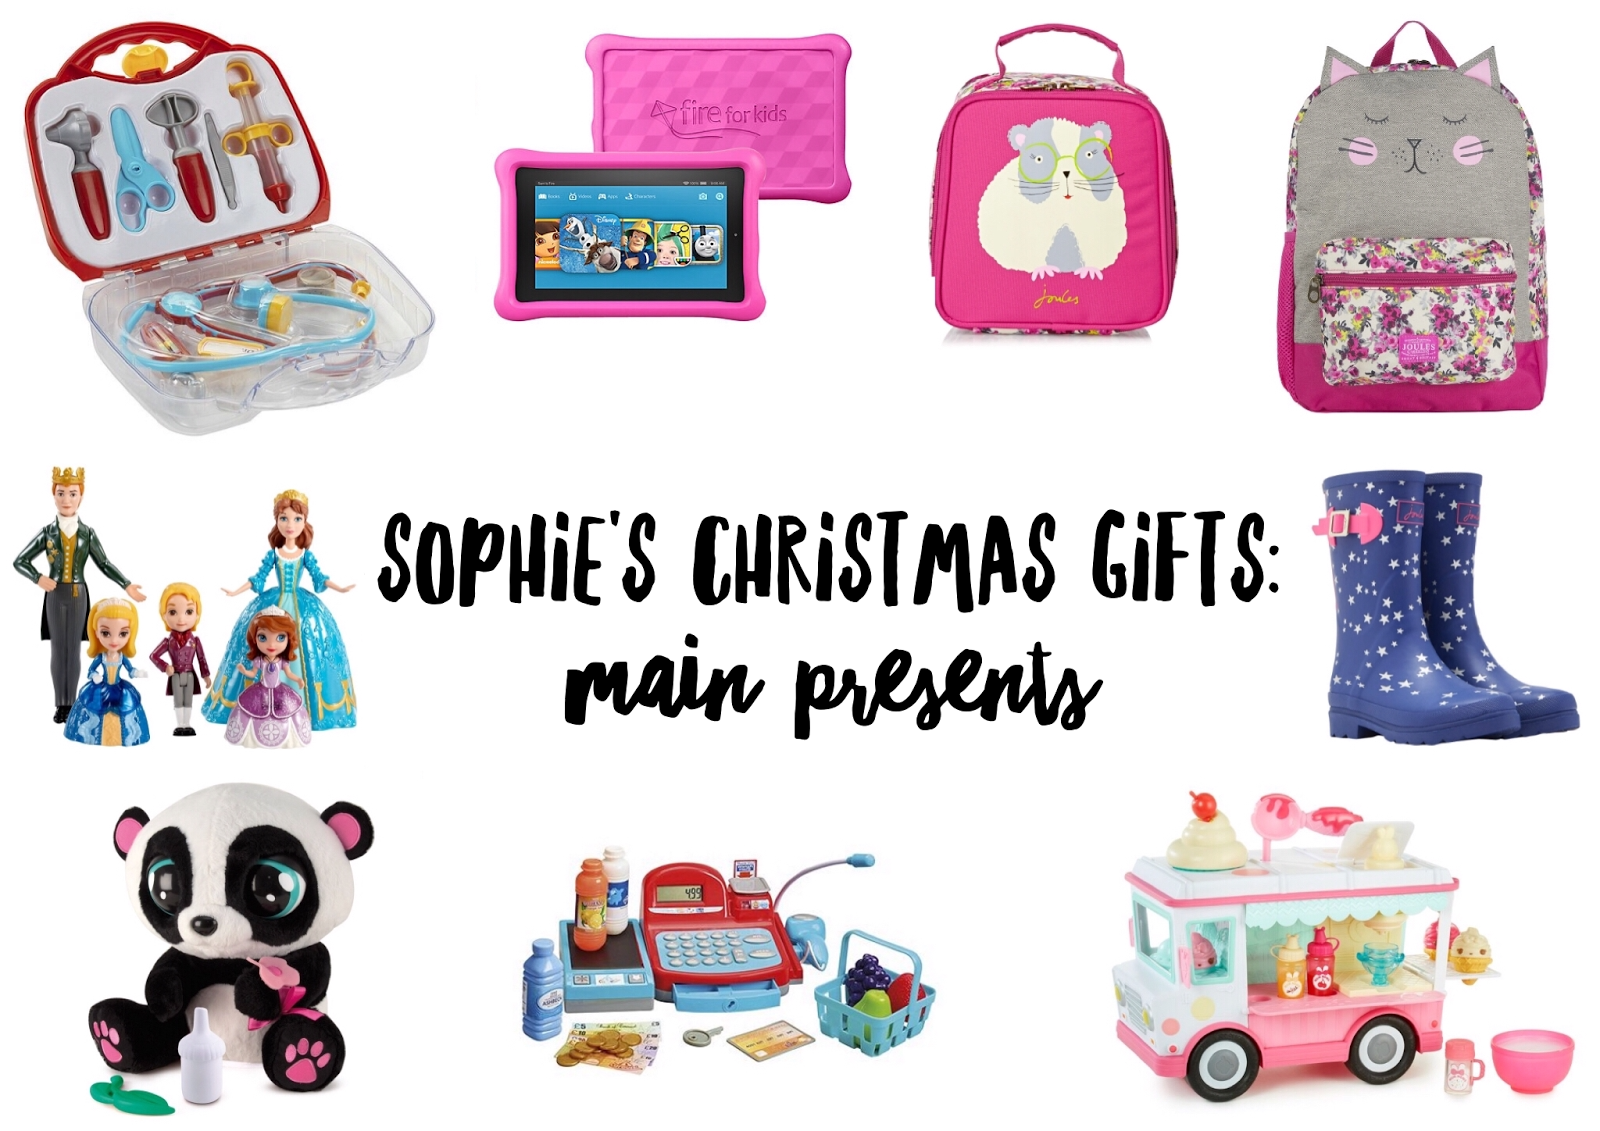 sophies christmas gifts 2016 main presents